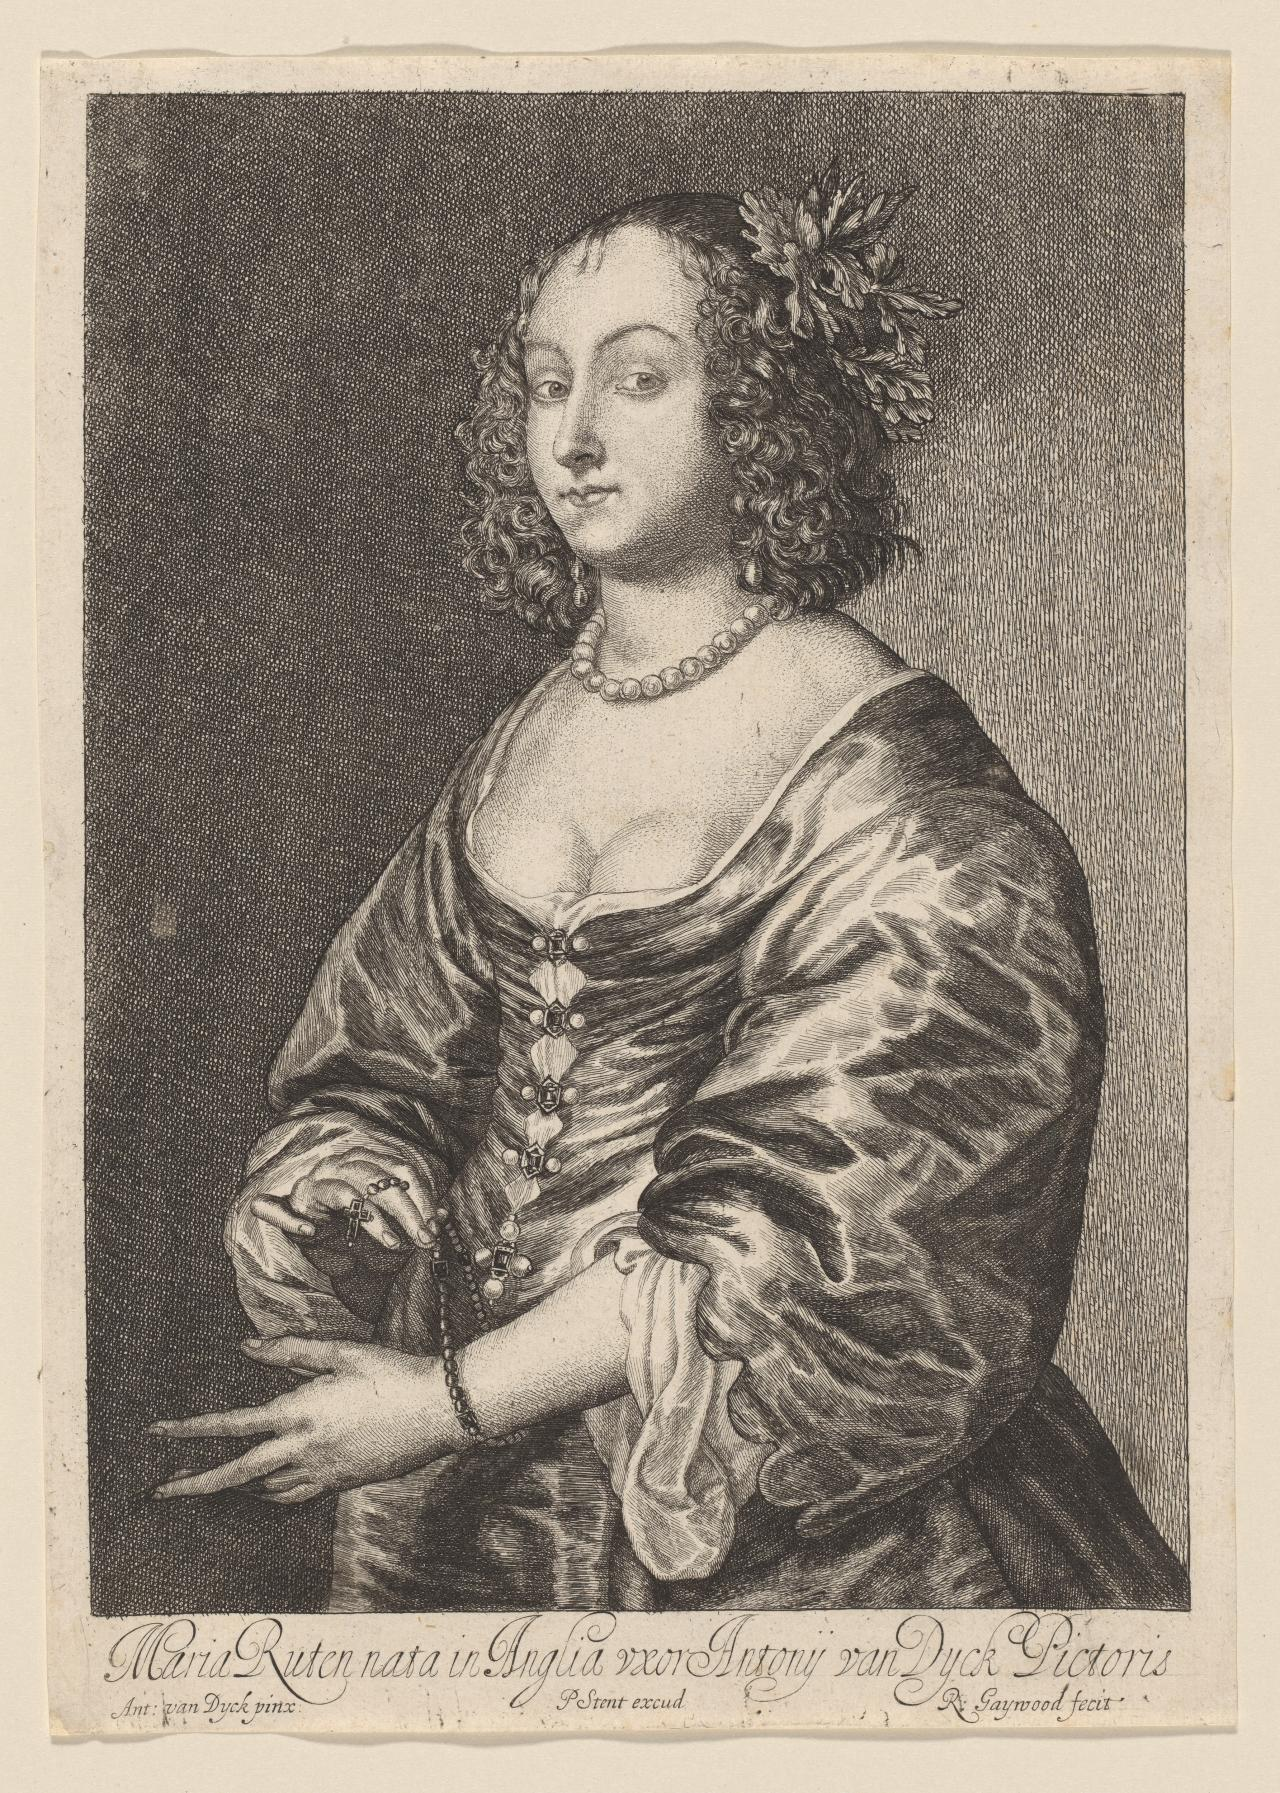 Mary Ruthven, Wife of Van Dyck